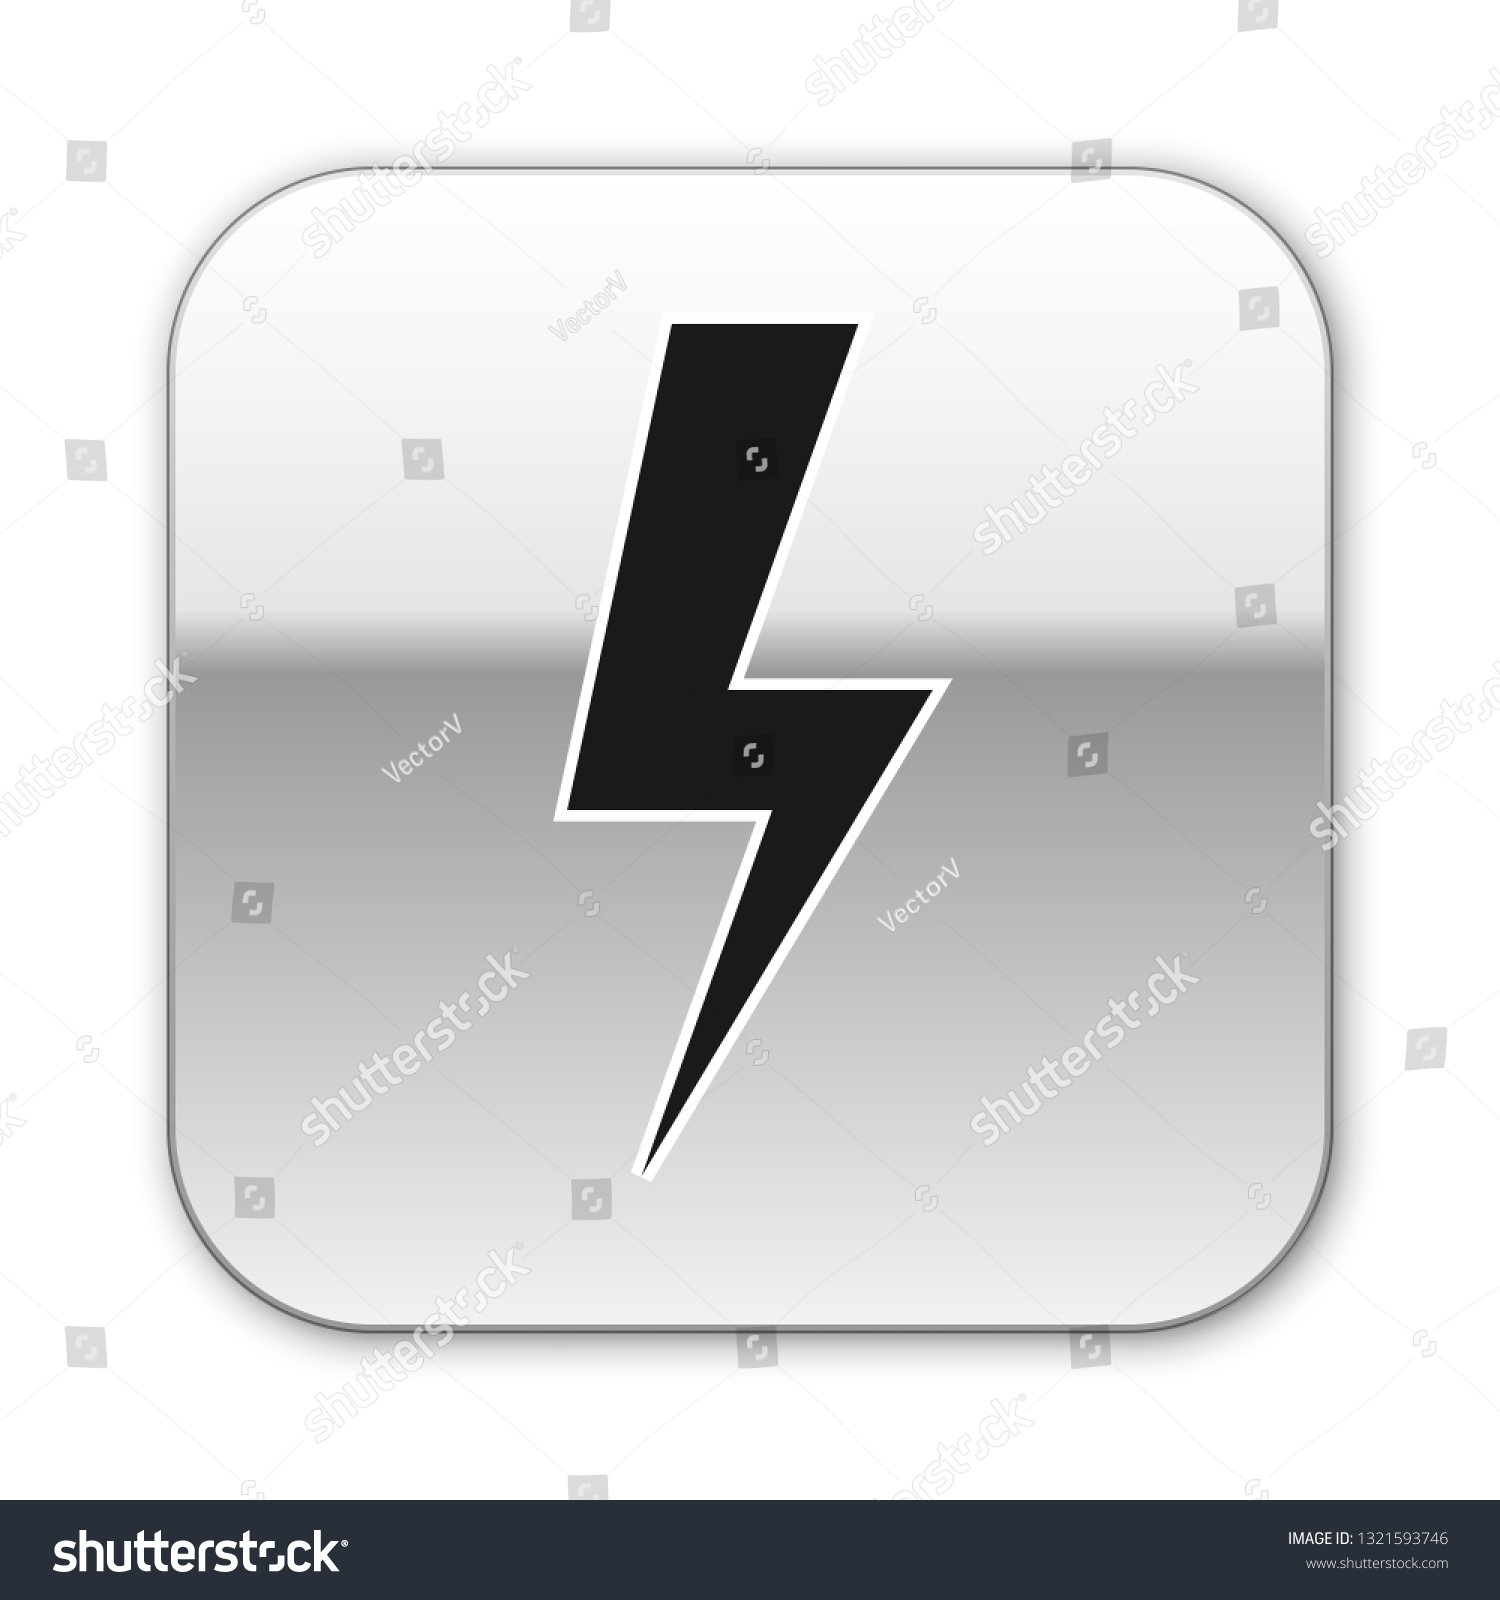 Black Lightning Bolt Icon Isolated On Stock Vector Royalty Free 1321593746,Principles Of Design Pattern Picture